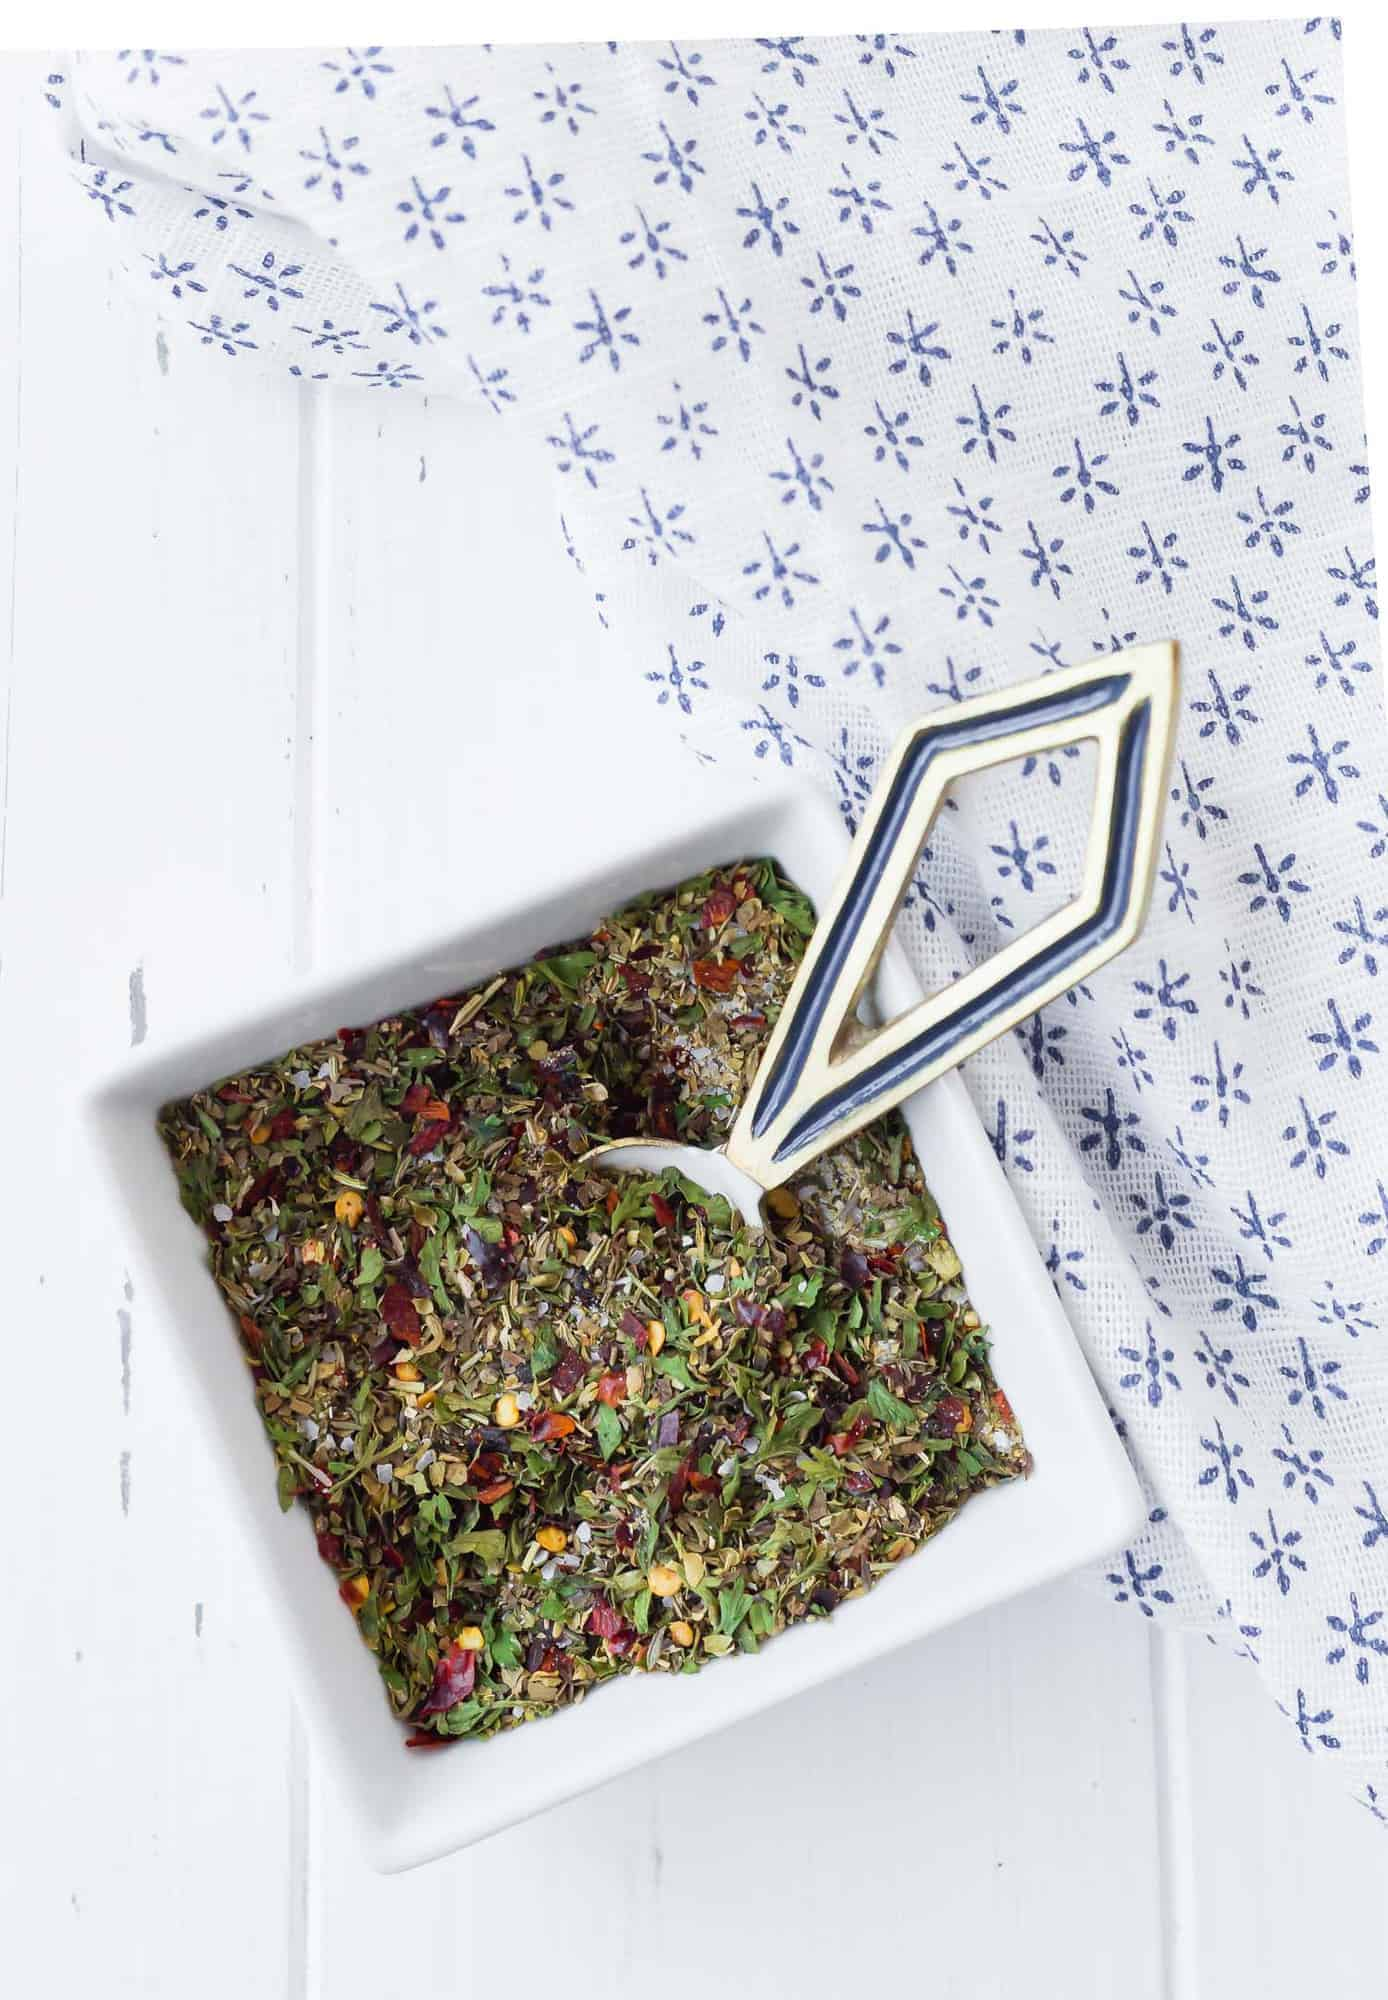 Dried herbs and spices in a small square white bowl with a decorative measuring spoon.